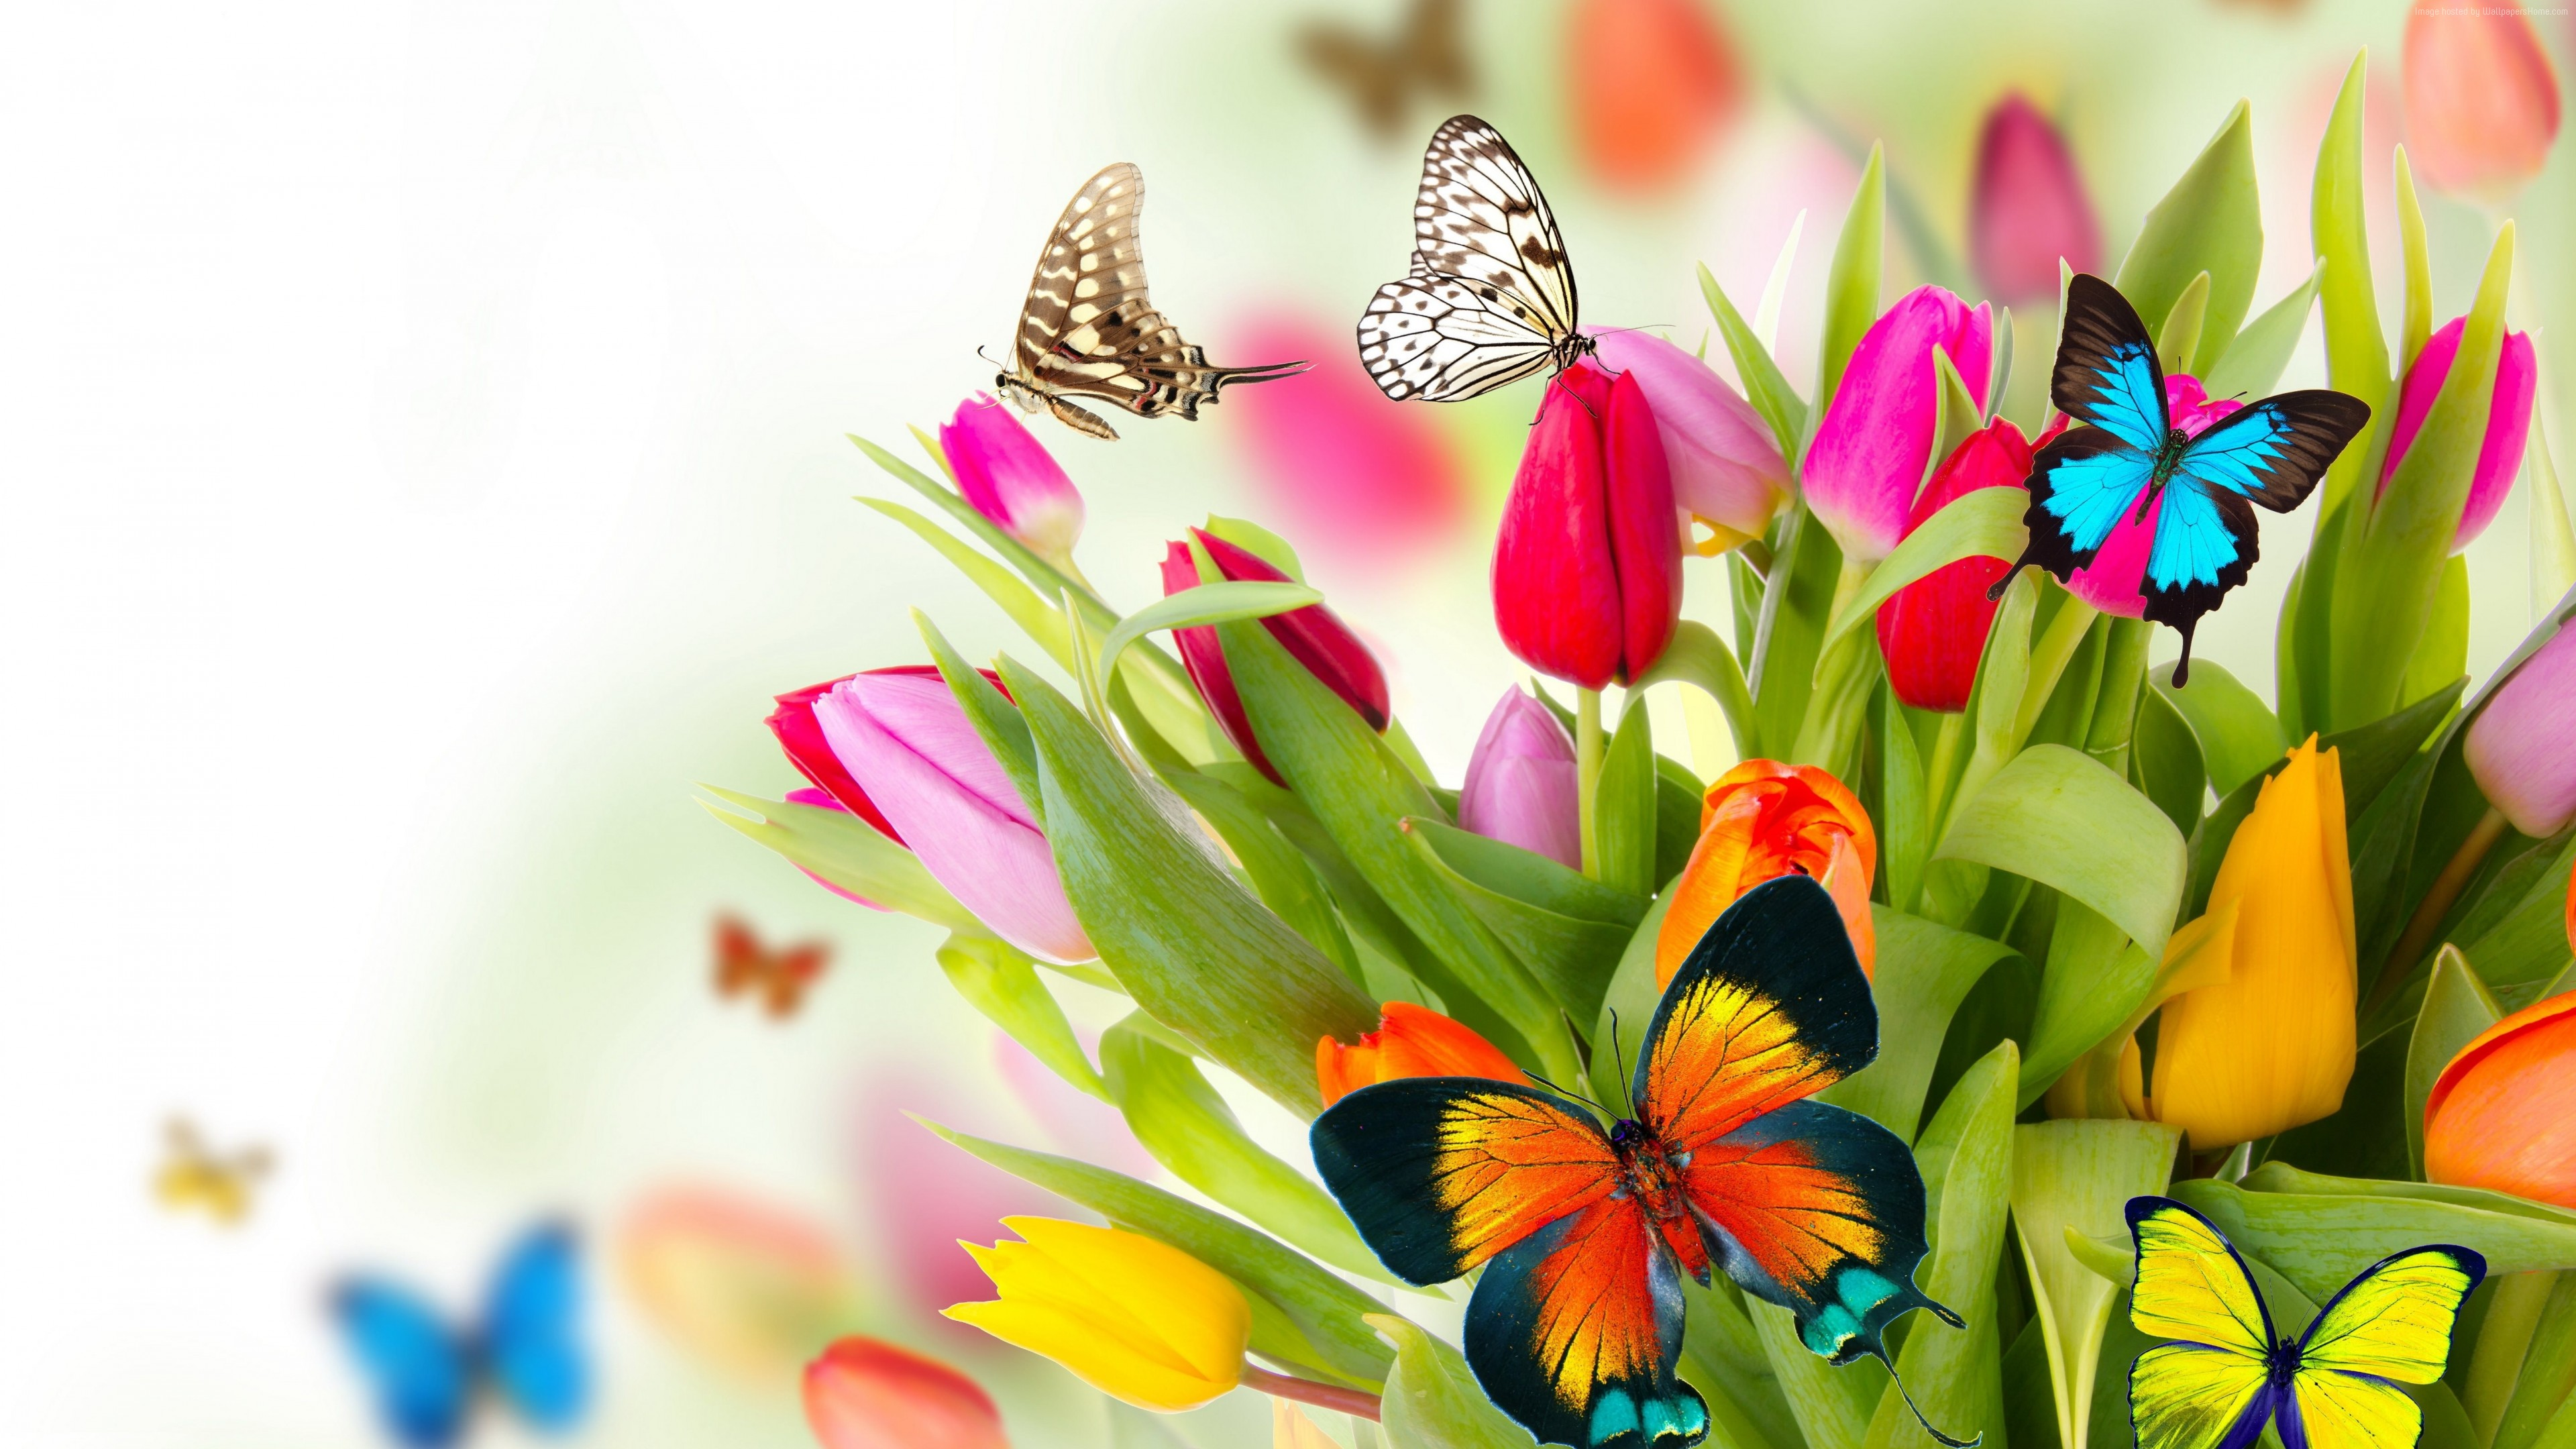 Wallpaper Butterfly Flowers Tulips 4k Animals Wallpaper Download High Resolution 4k Wallpaper